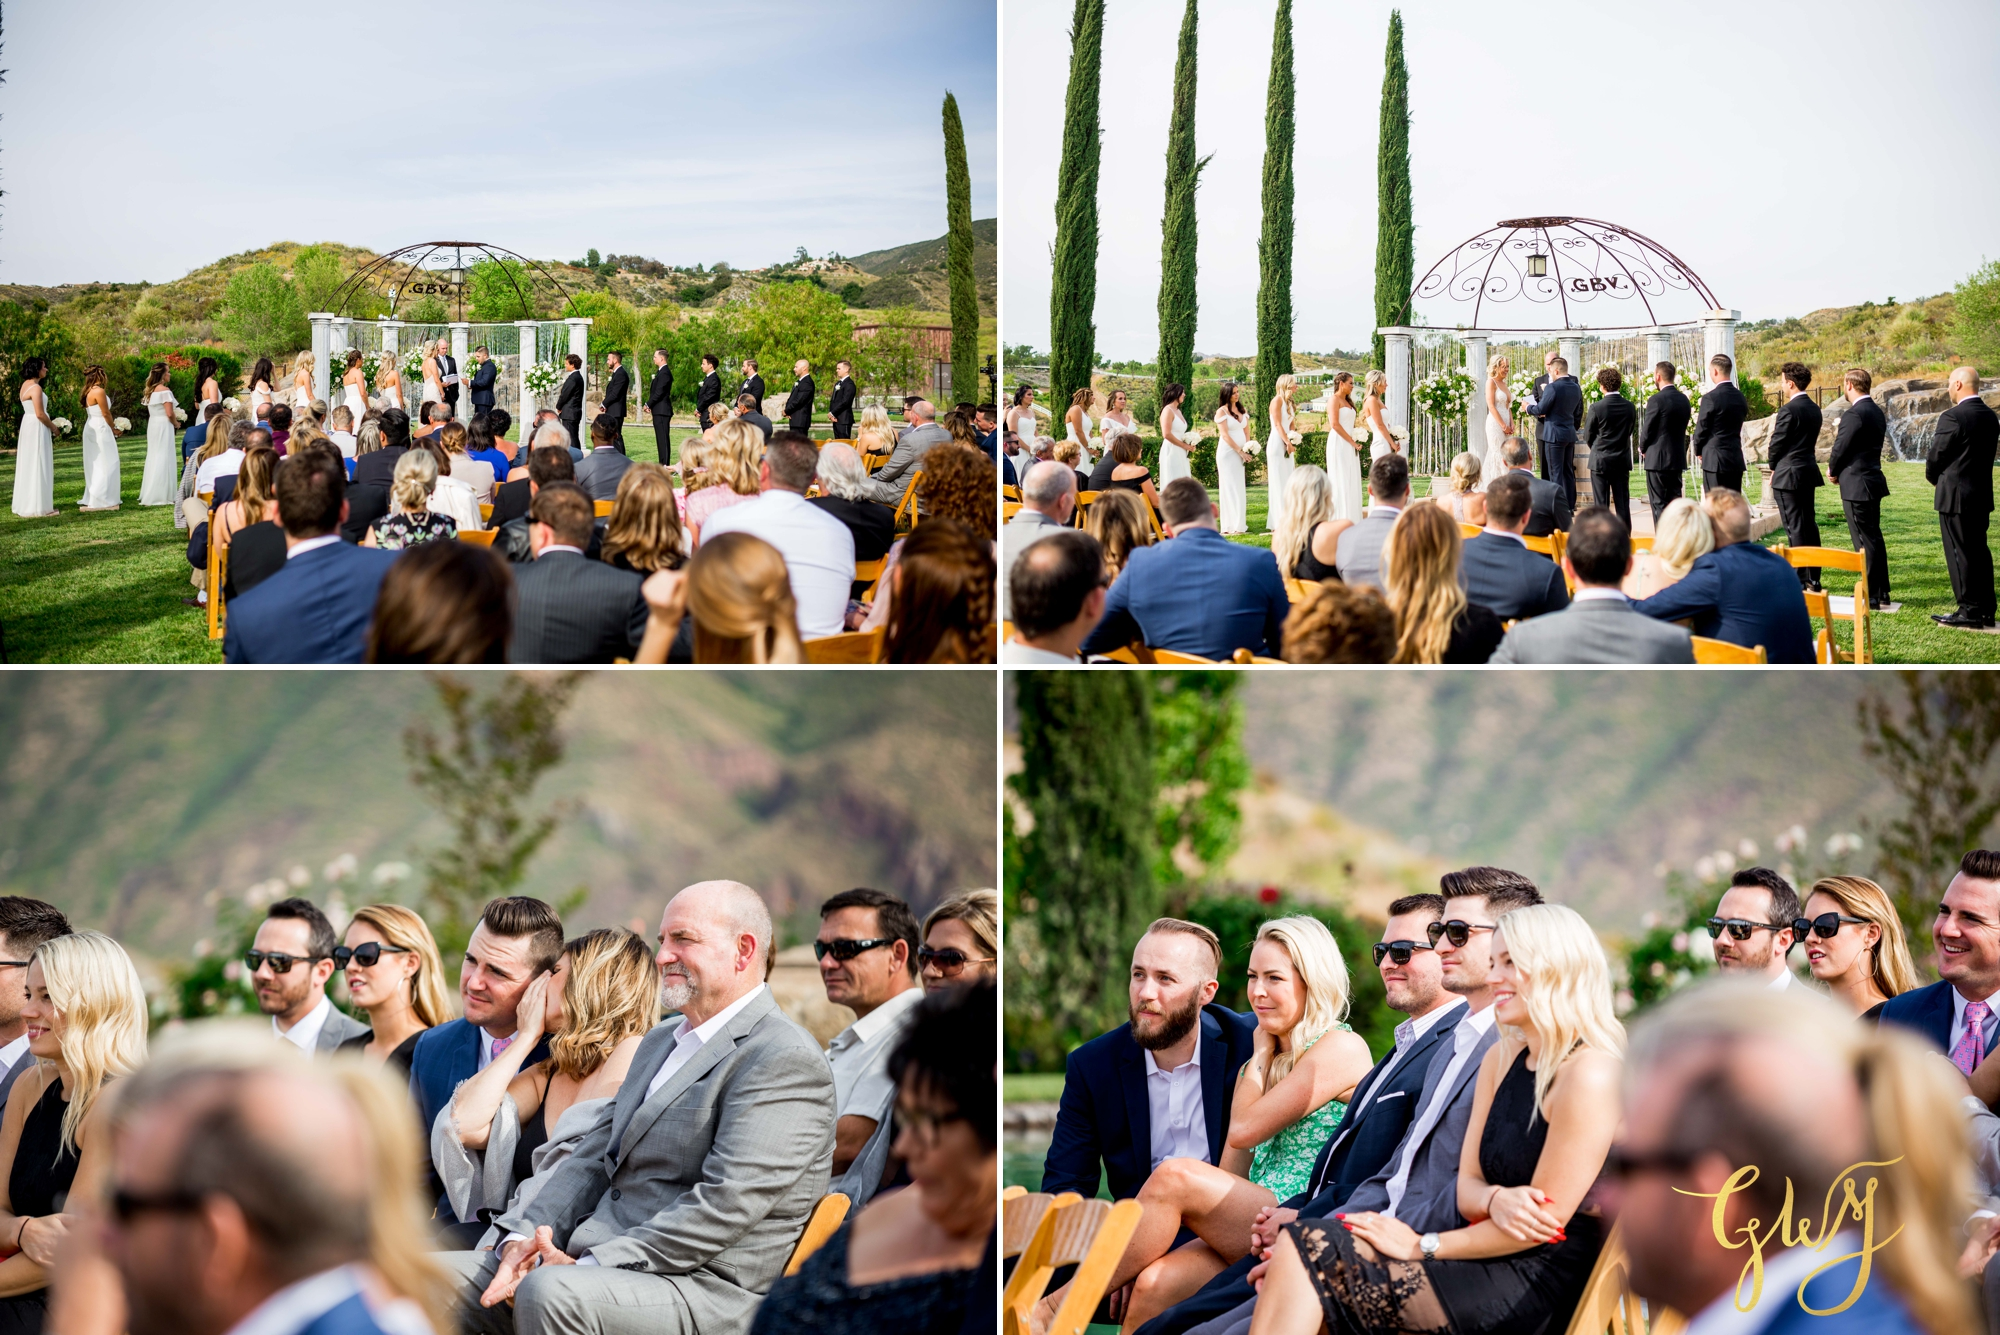 Kristen + Krsto's Romantic Temecula Winery Spring Wedding by Glass Woods Media 32.jpg